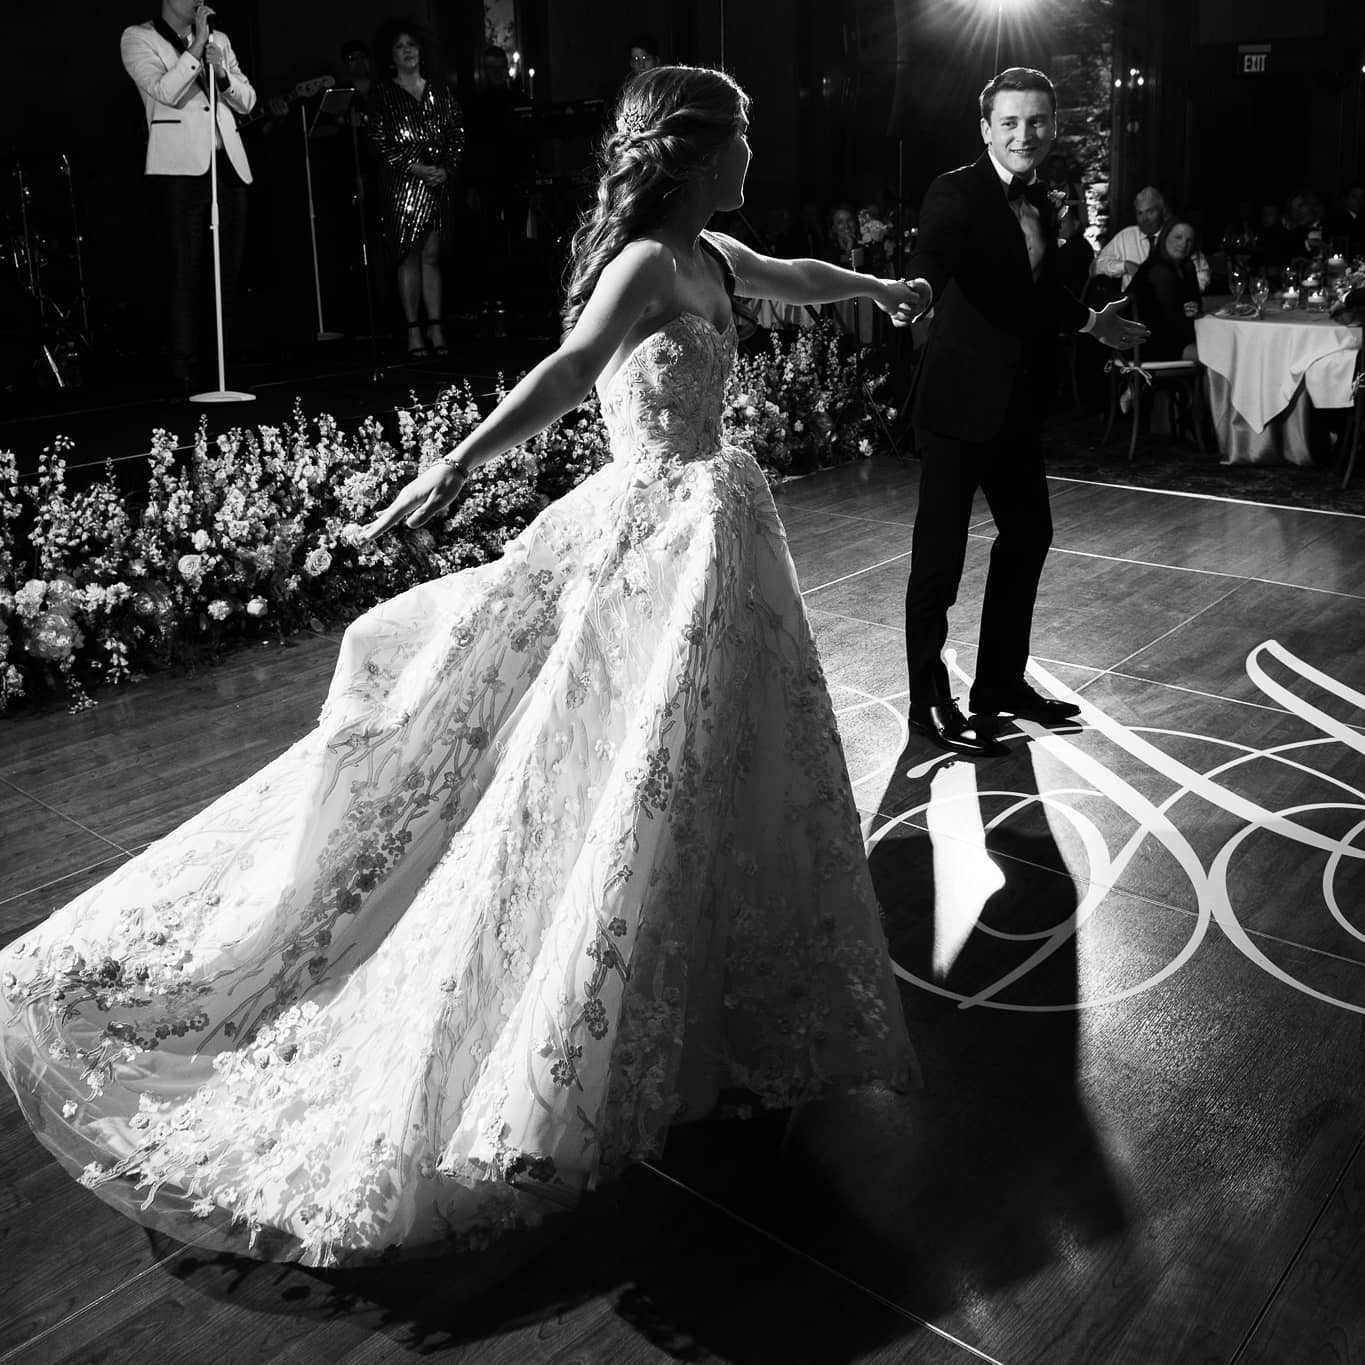 Black and white photo of a bride and groom dancing on the dance floor at the wedding reception